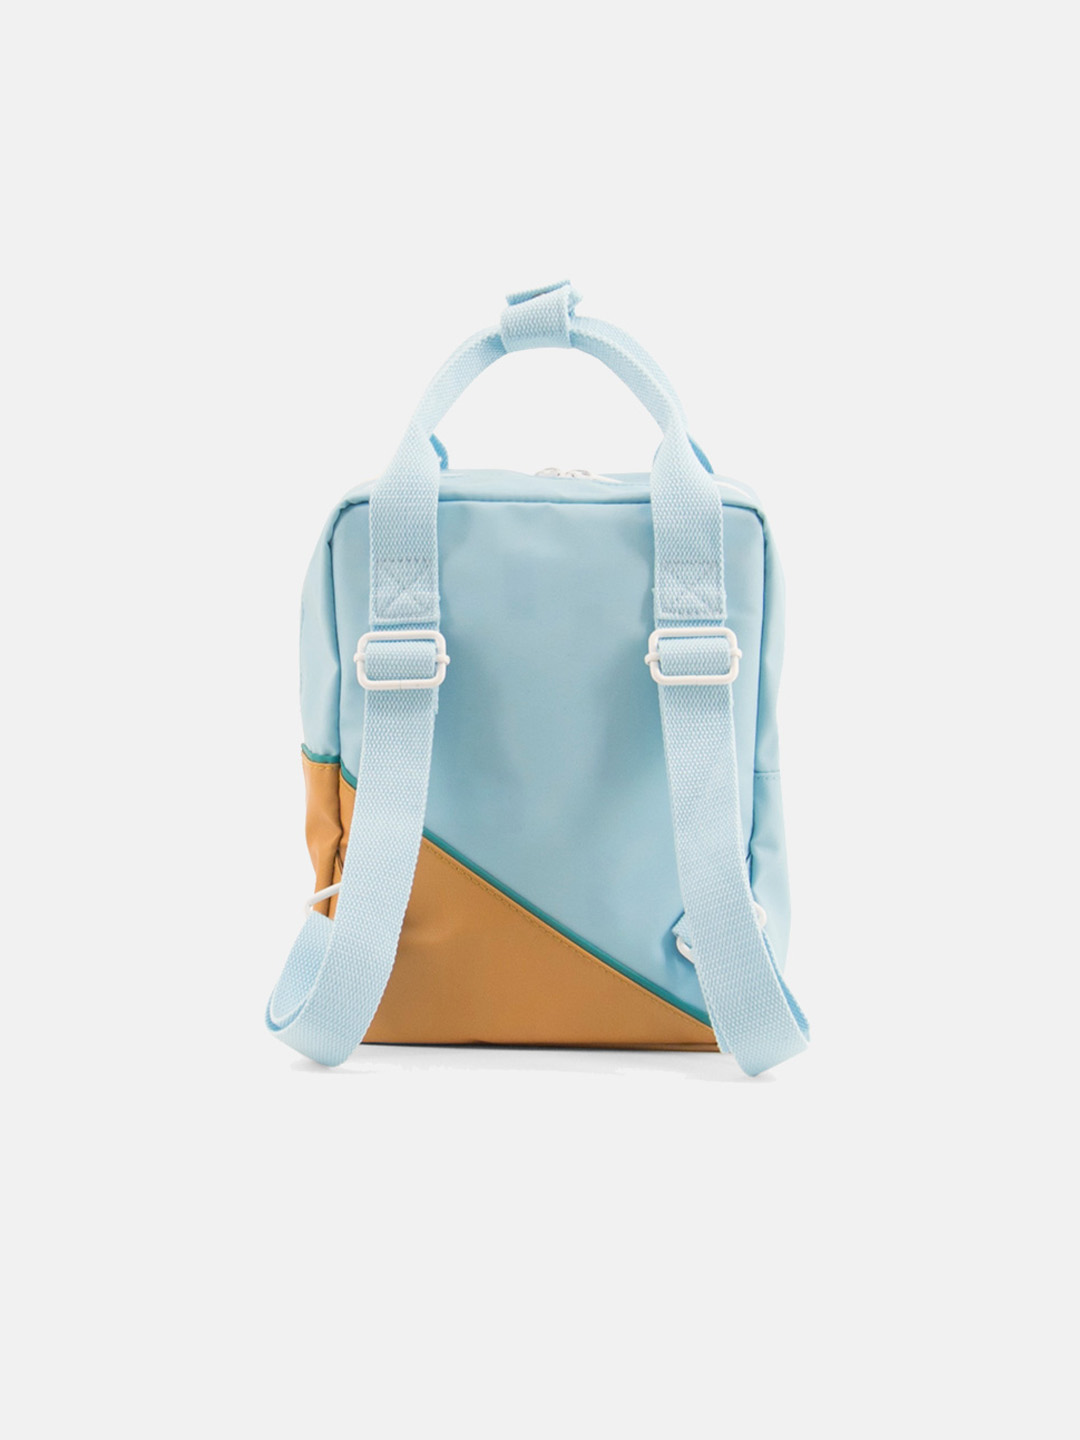 Small Backpack - diagonal light blue & fudge caramel